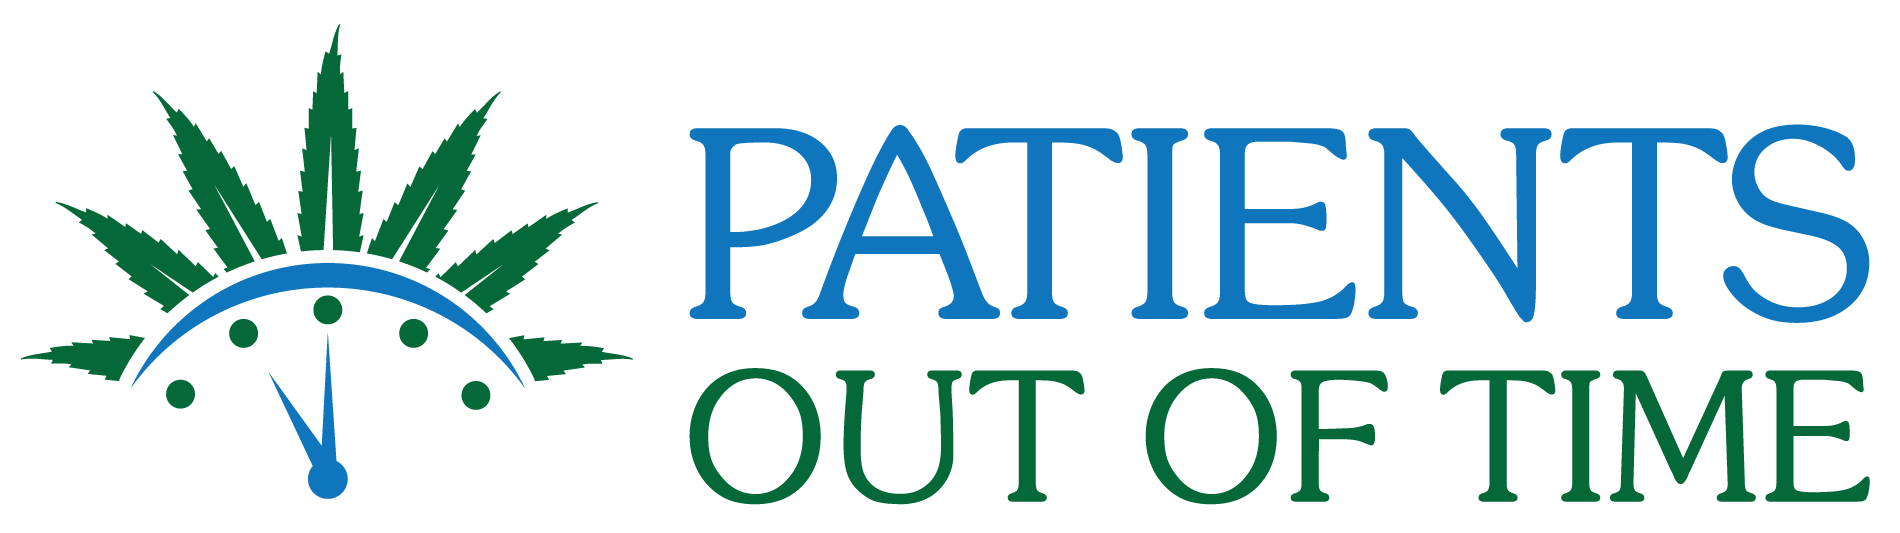 Patients Out of Time